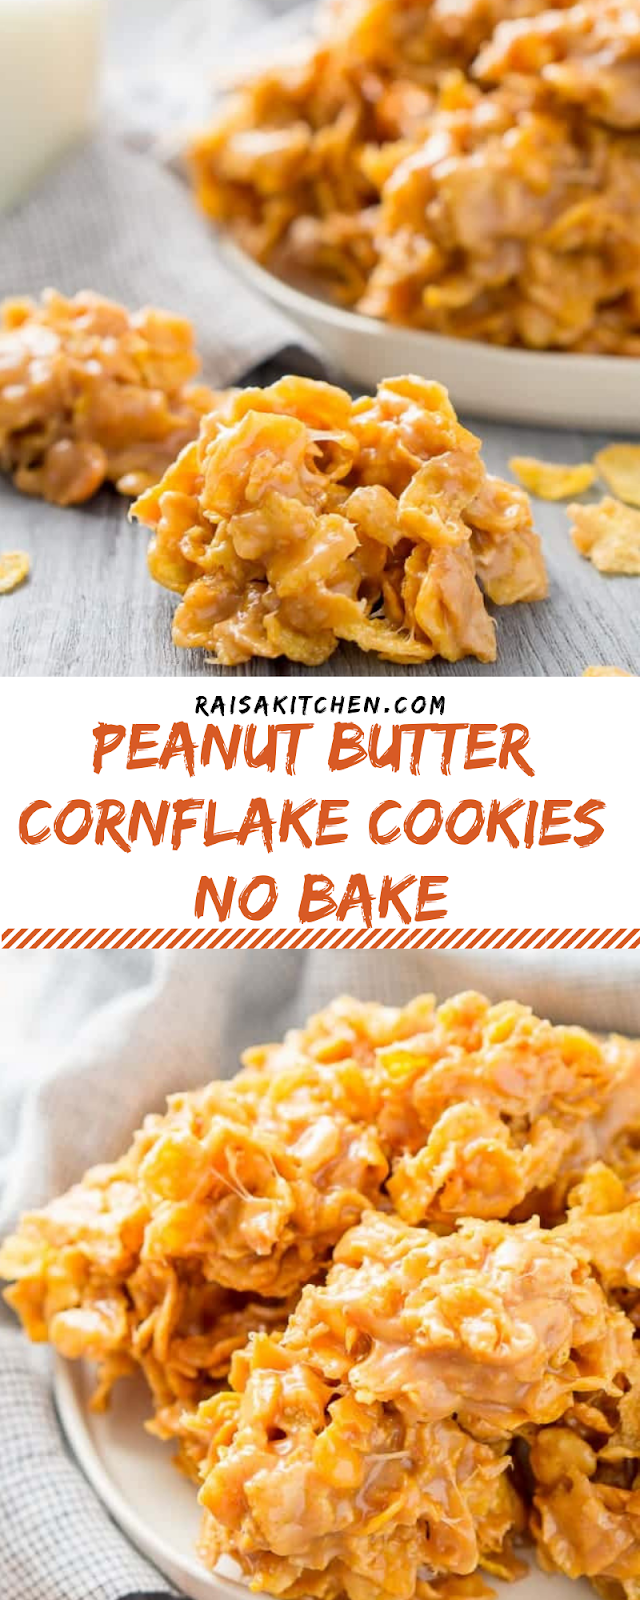 Peanut Butter Cornflake Cookies (no bake)